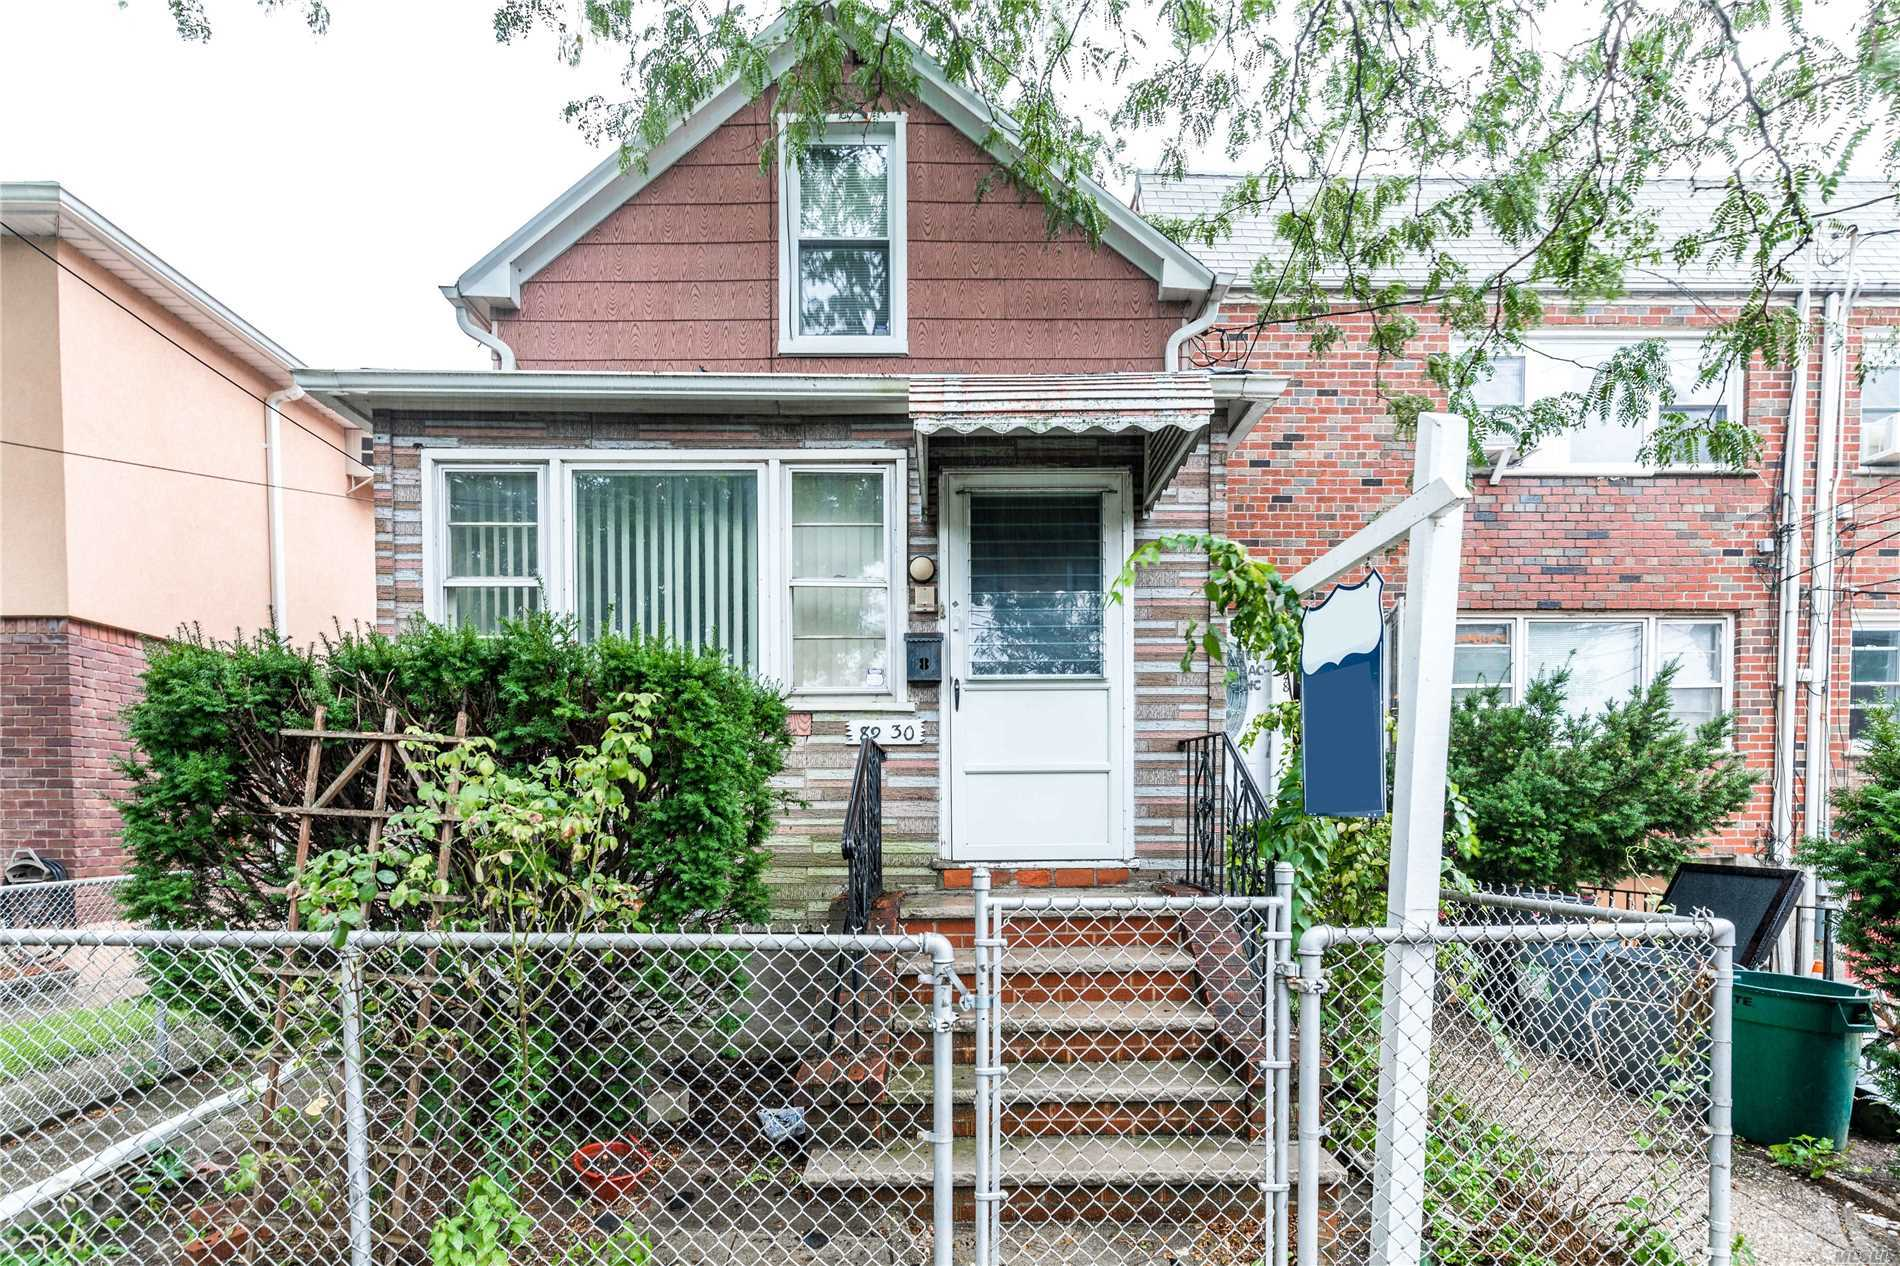 Excellent School District. Great Place For Small Family Peaceful 2-Way Street. Good Size Bldg, Large Backyard Great For Entertainment. Close To Public Transportation And Major Highways (Belt Parkway), Restaurants, Shopping Area (Gateway Center) And Woodhaven Blvd.